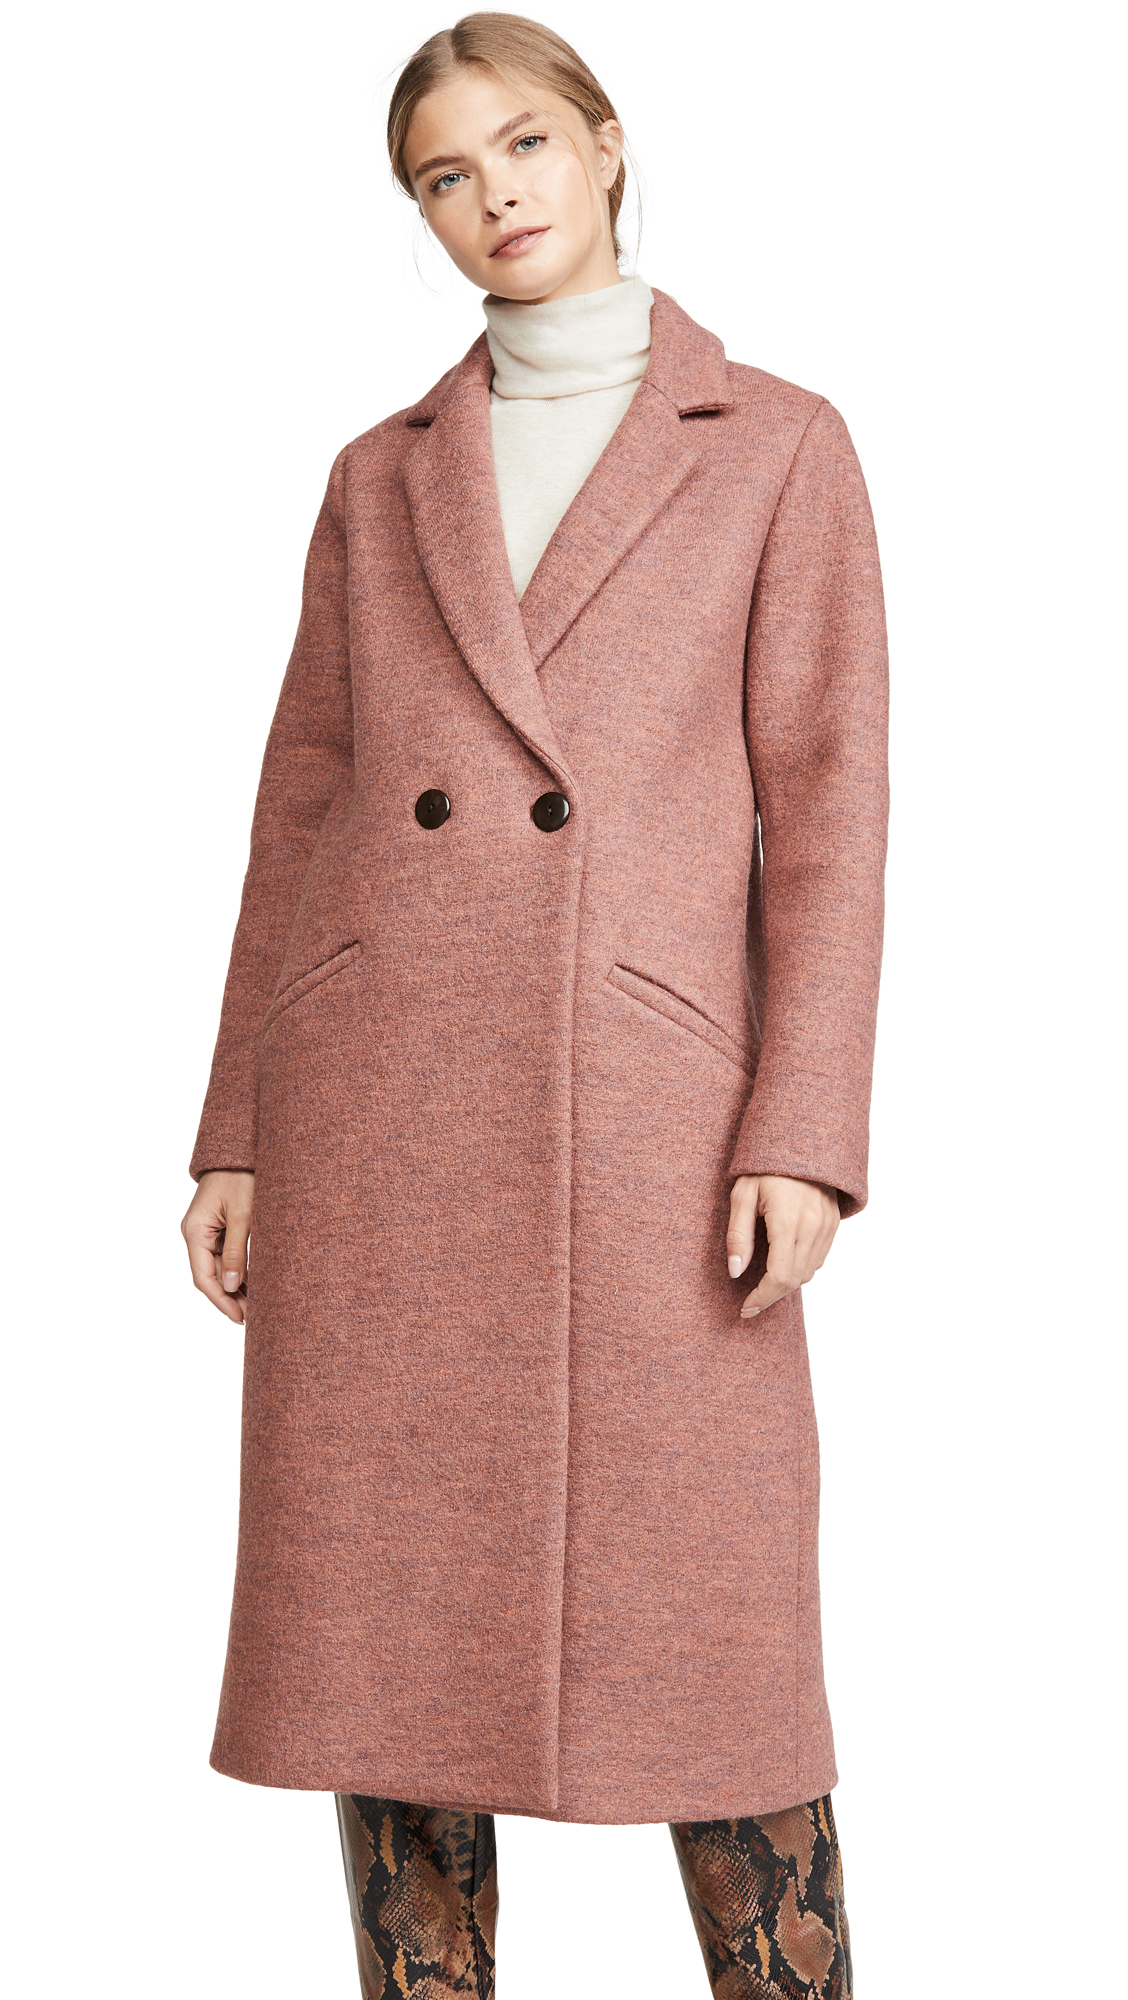 Buy Mara Hoffman Dolores Coat online beautiful Mara Hoffman Clothing, Jackets